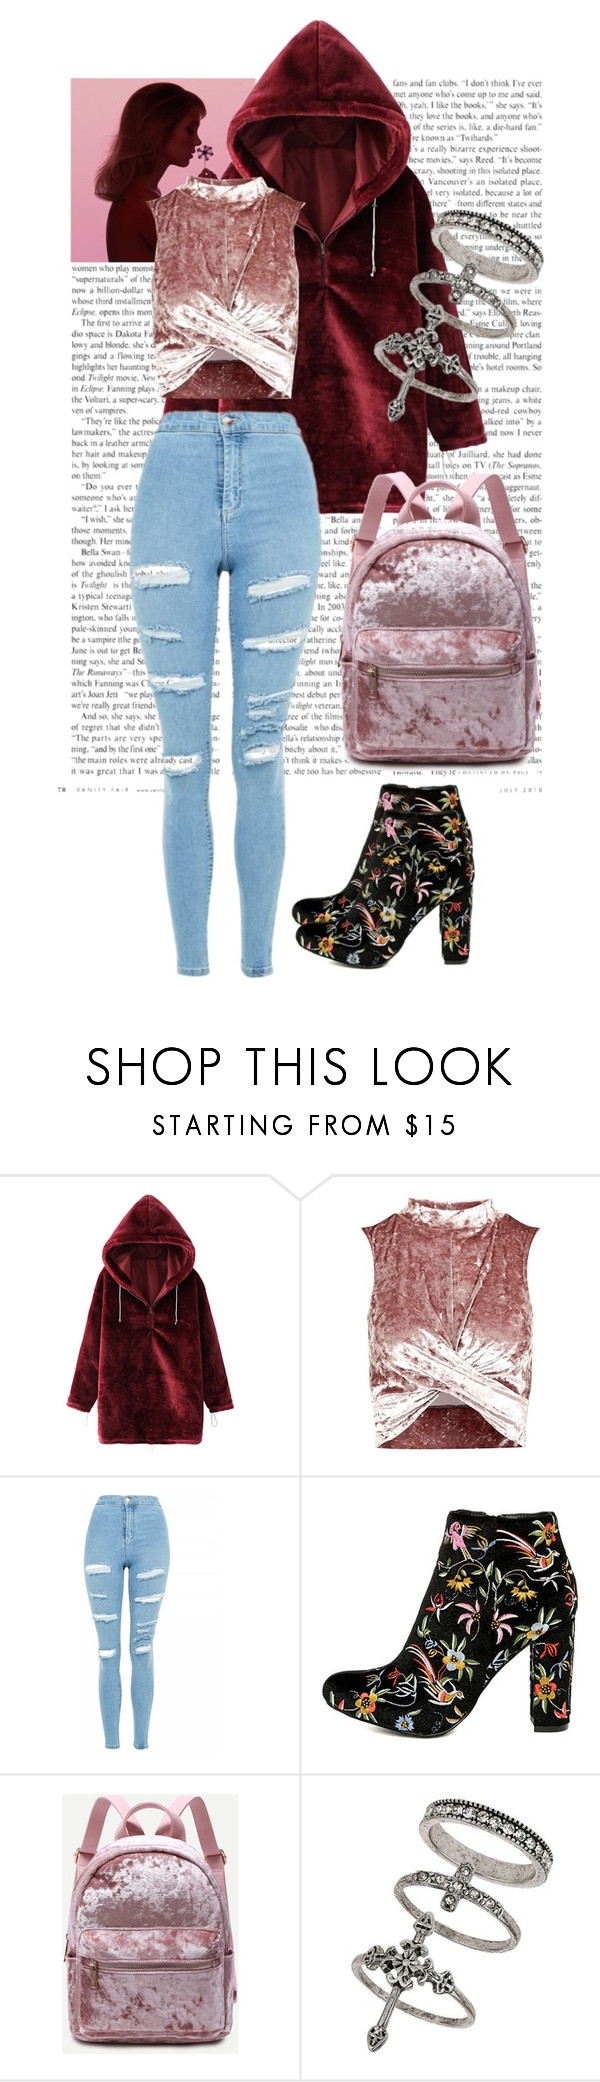 """""""Untitled #20"""" by naomy17001 ❤ liked on Polyvore featuring WithChic, Topshop, Liliana and Miss Selfridge"""